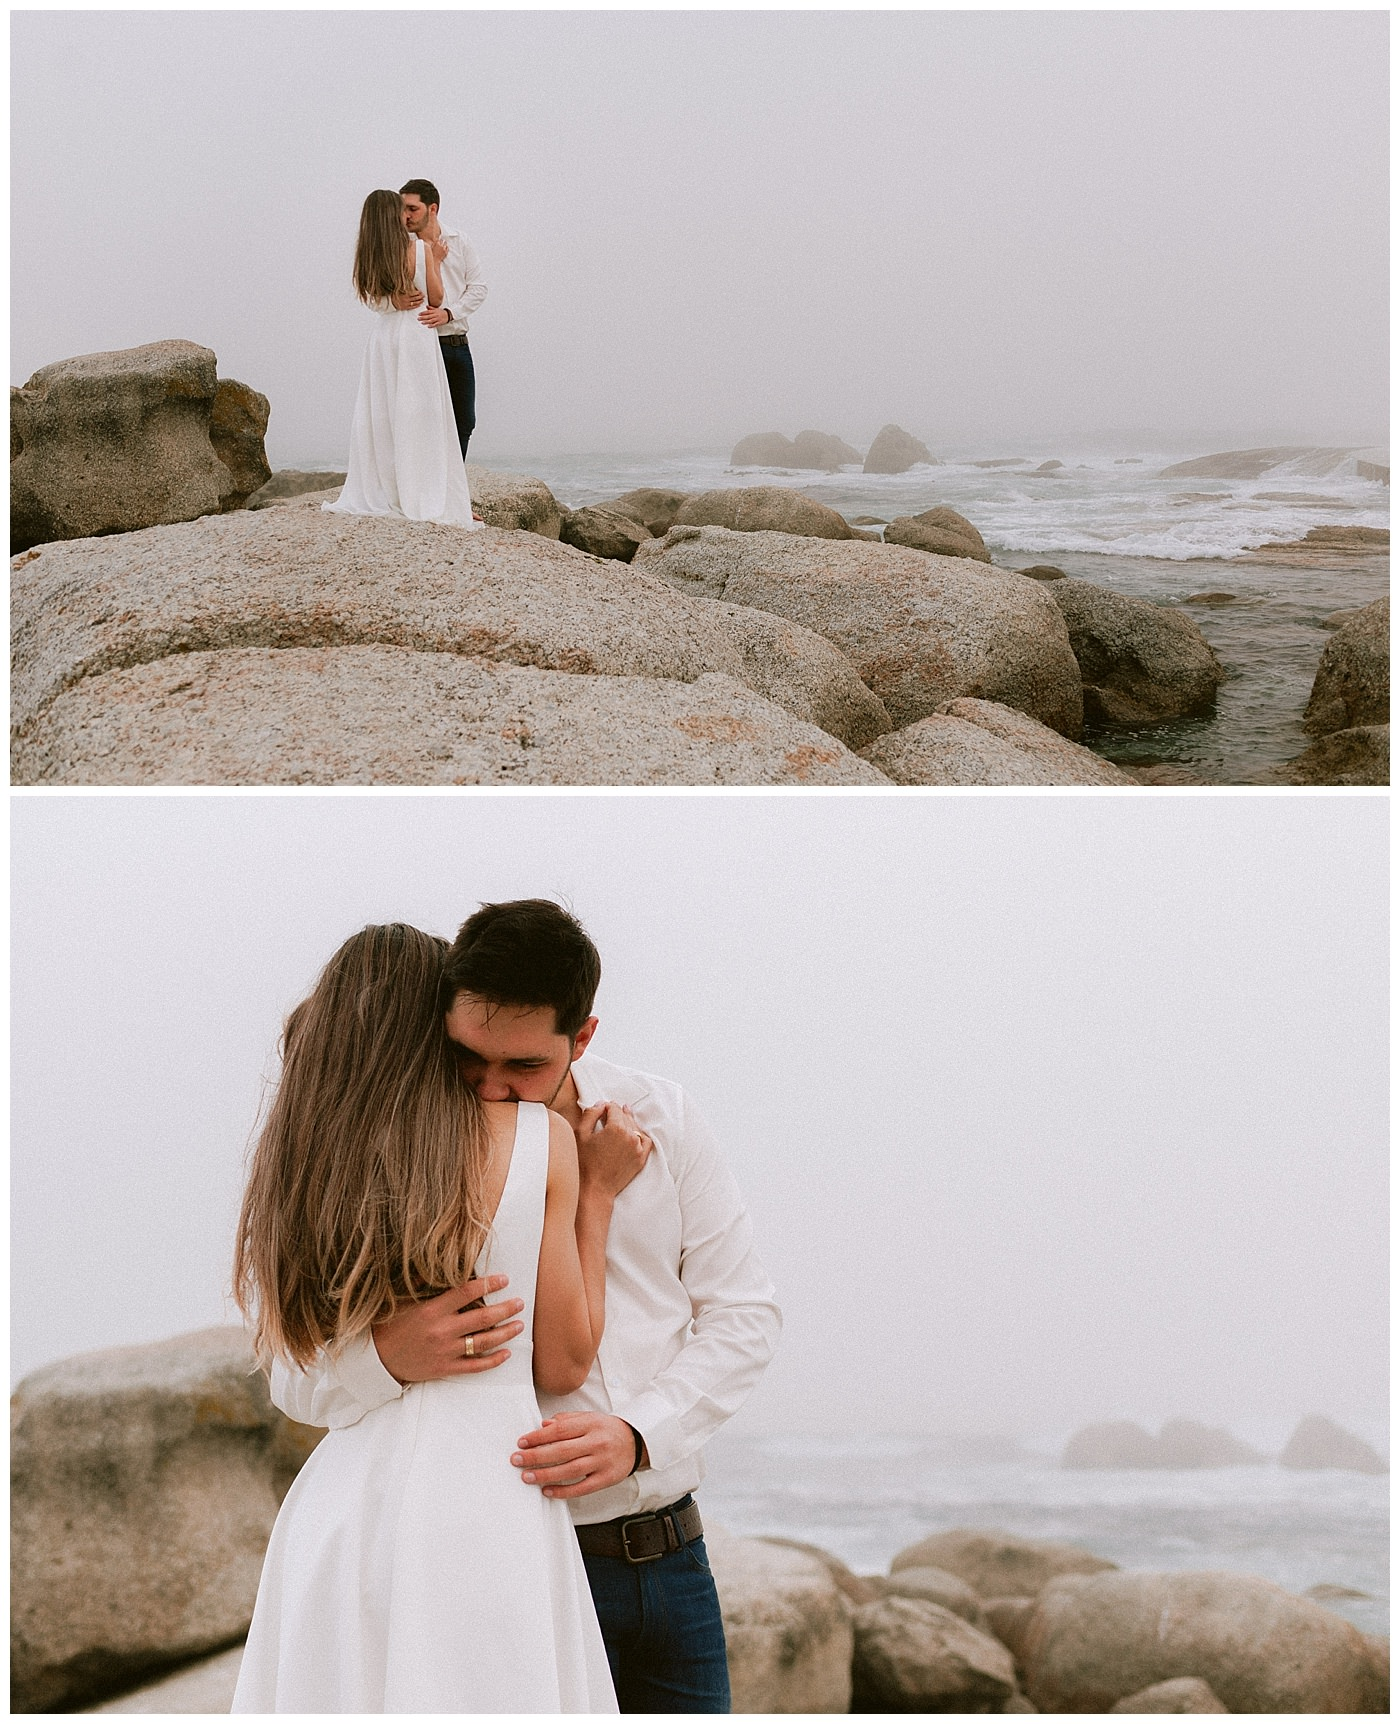 Camps bay beach wedding photography